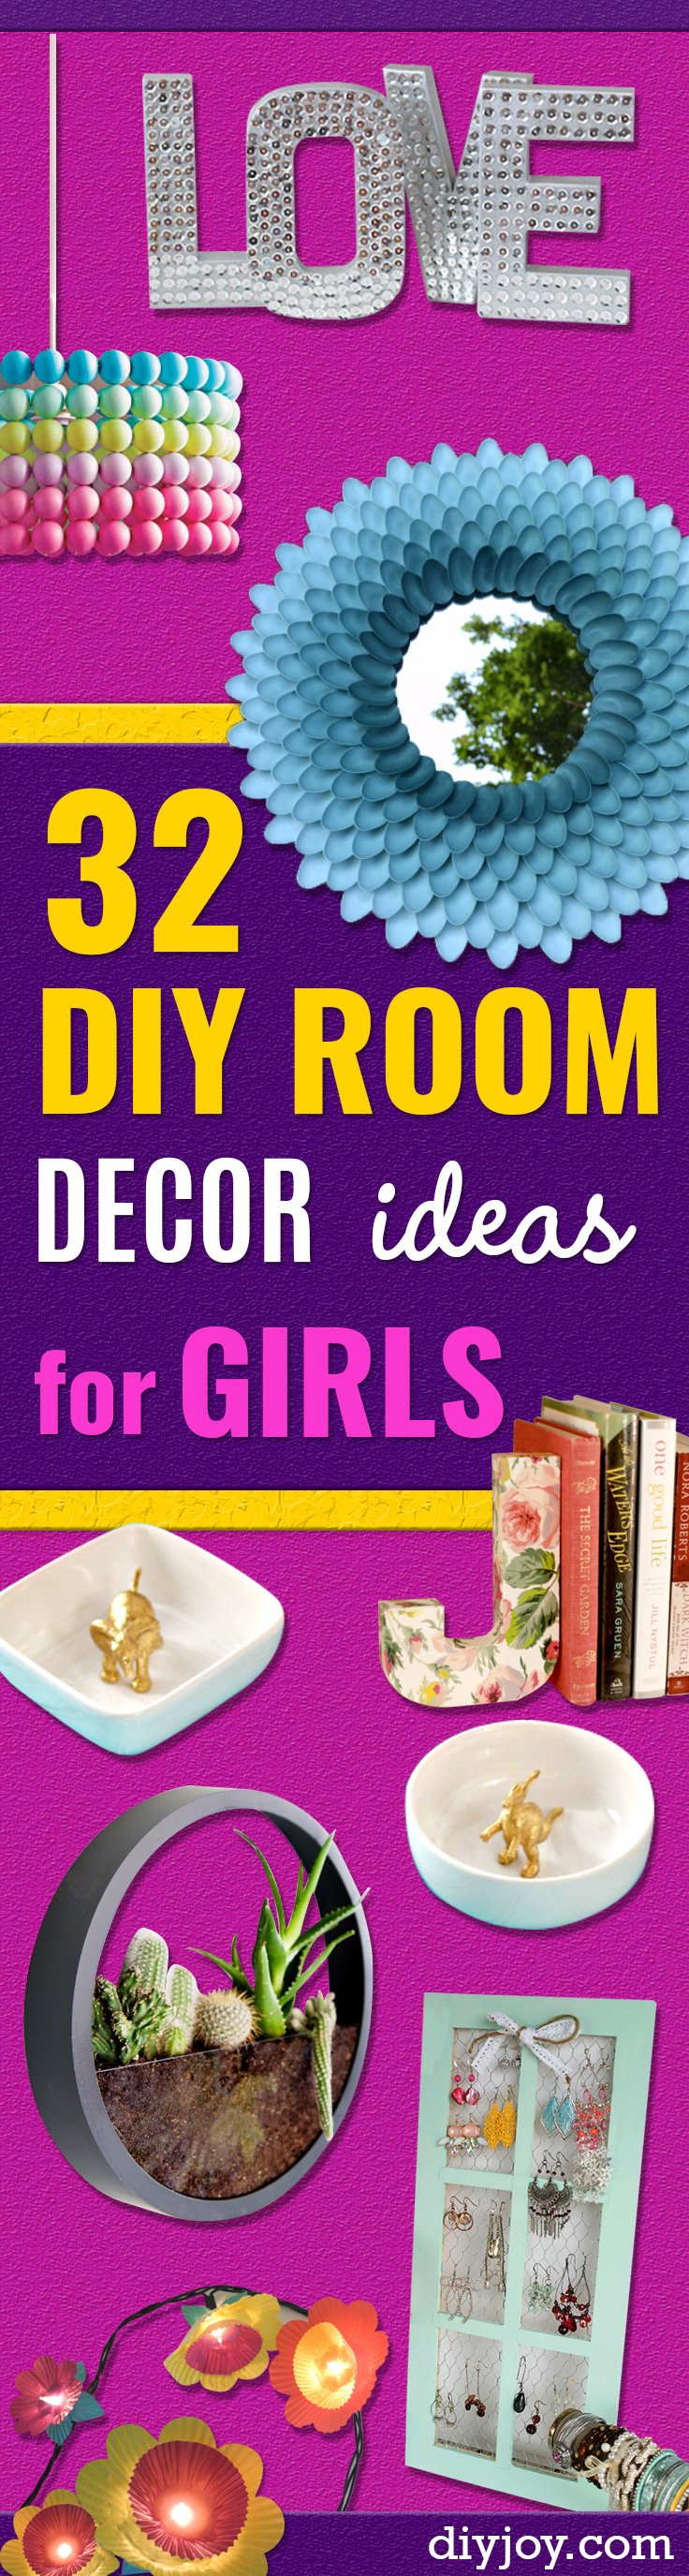 42 DIY Room Decor for Girls - Awesome Do It Yourself Room Decor For Girls, Room Decorating Ideas, Creative Room Decor For Girls, Bedroom Accessories, Insanely Cute Room Decor For Girls http://diyjoy.com/diy-room-decor-girls